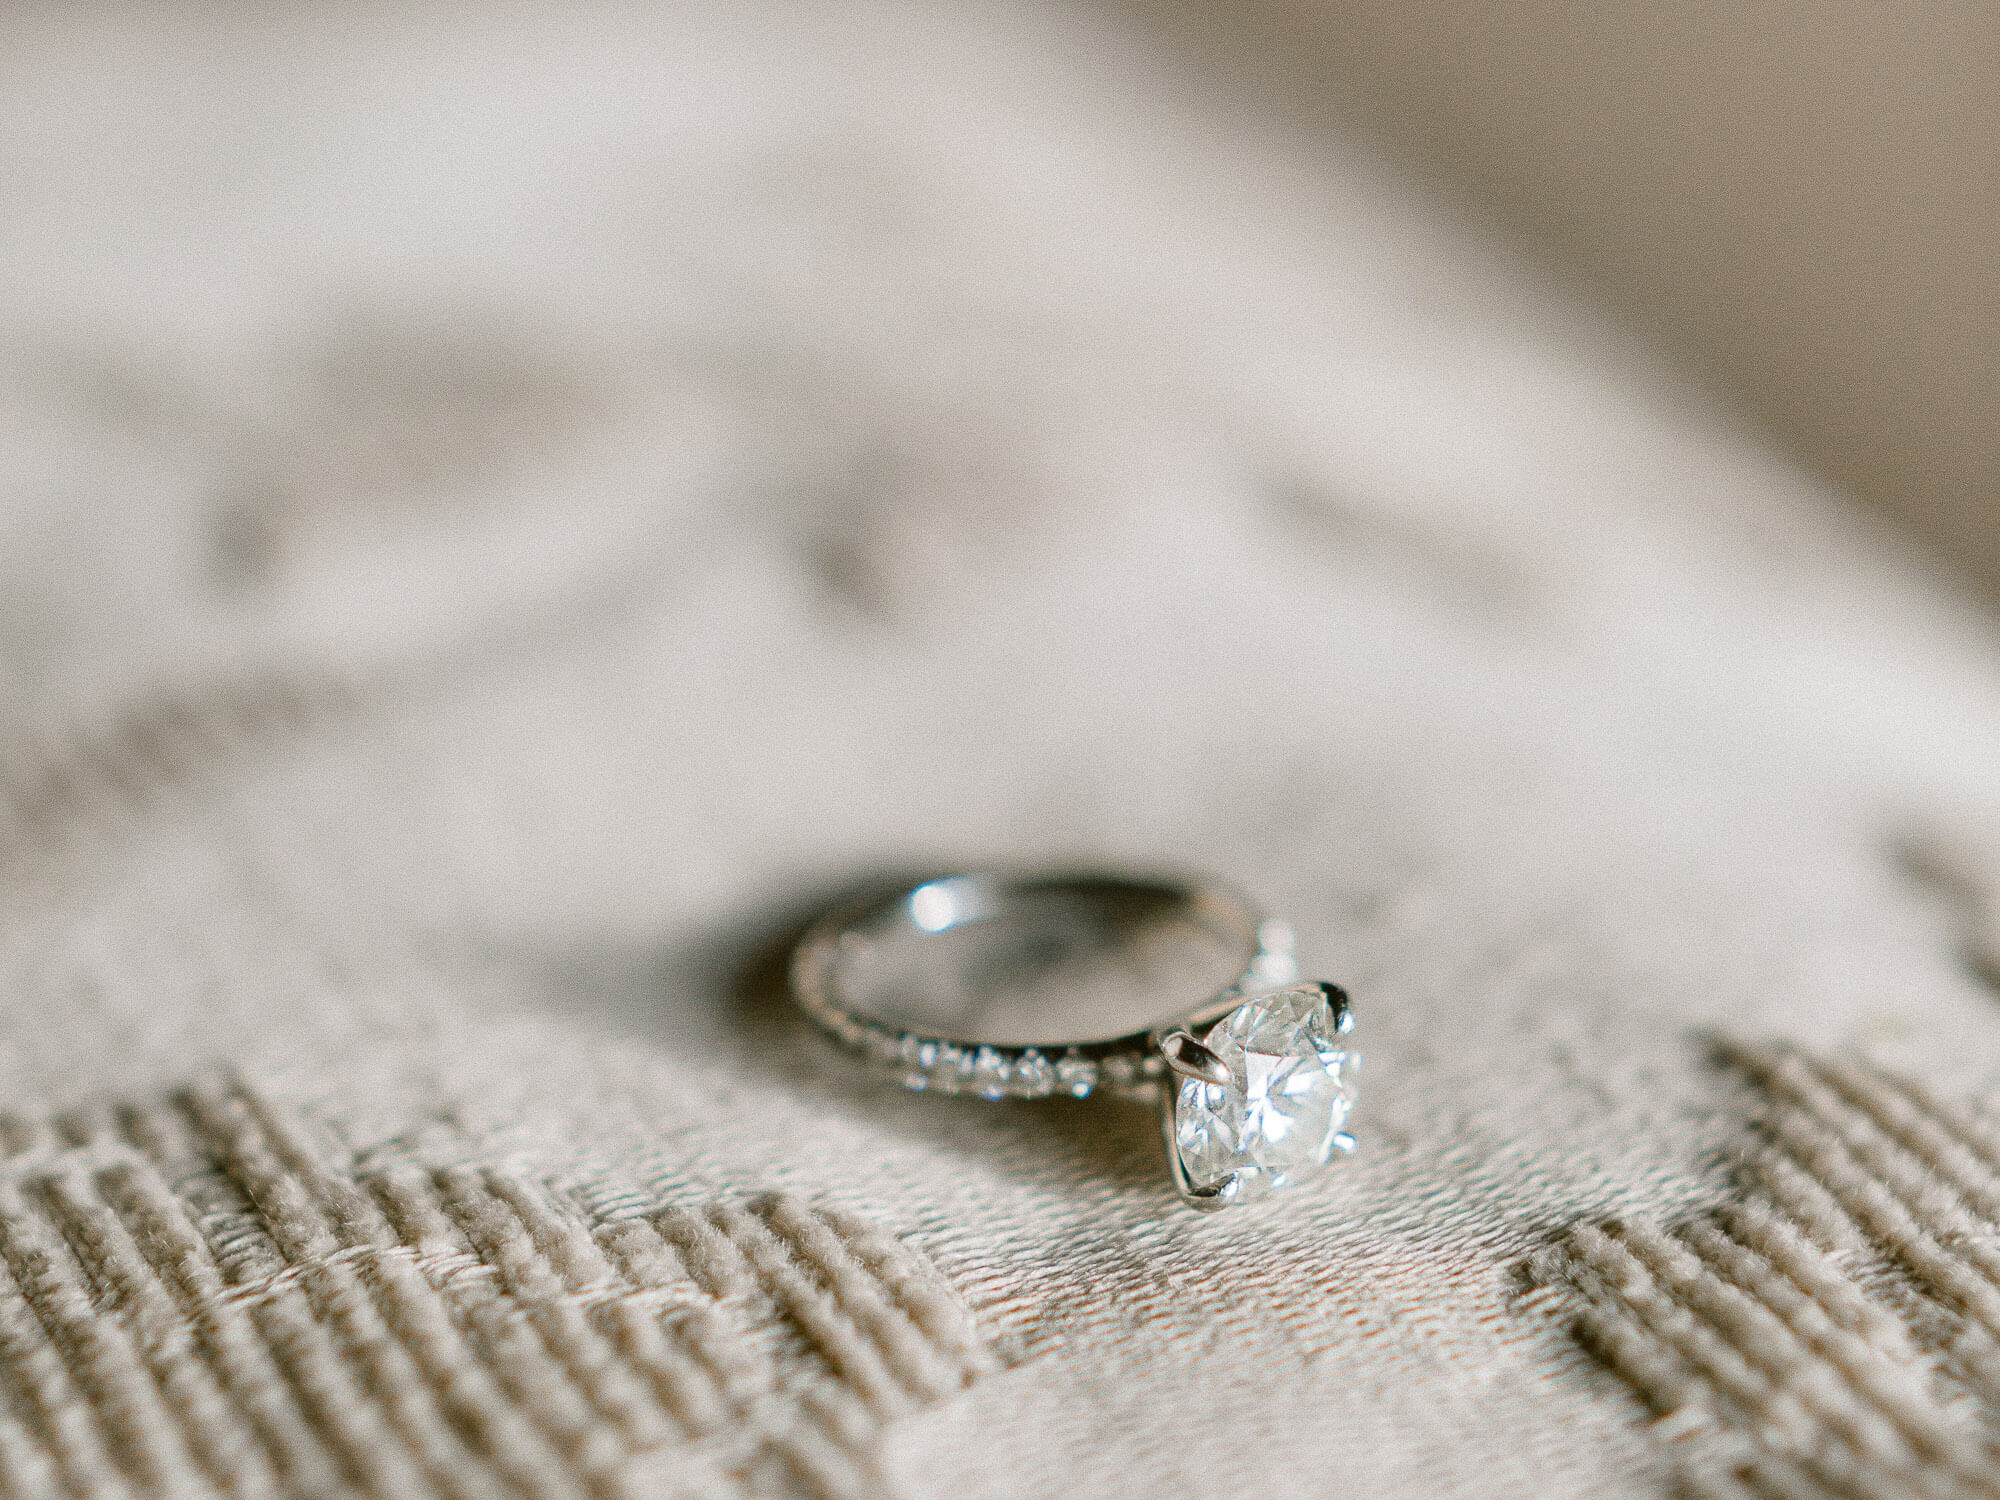 Engagement ring close up by Portugal Wedding Photographer